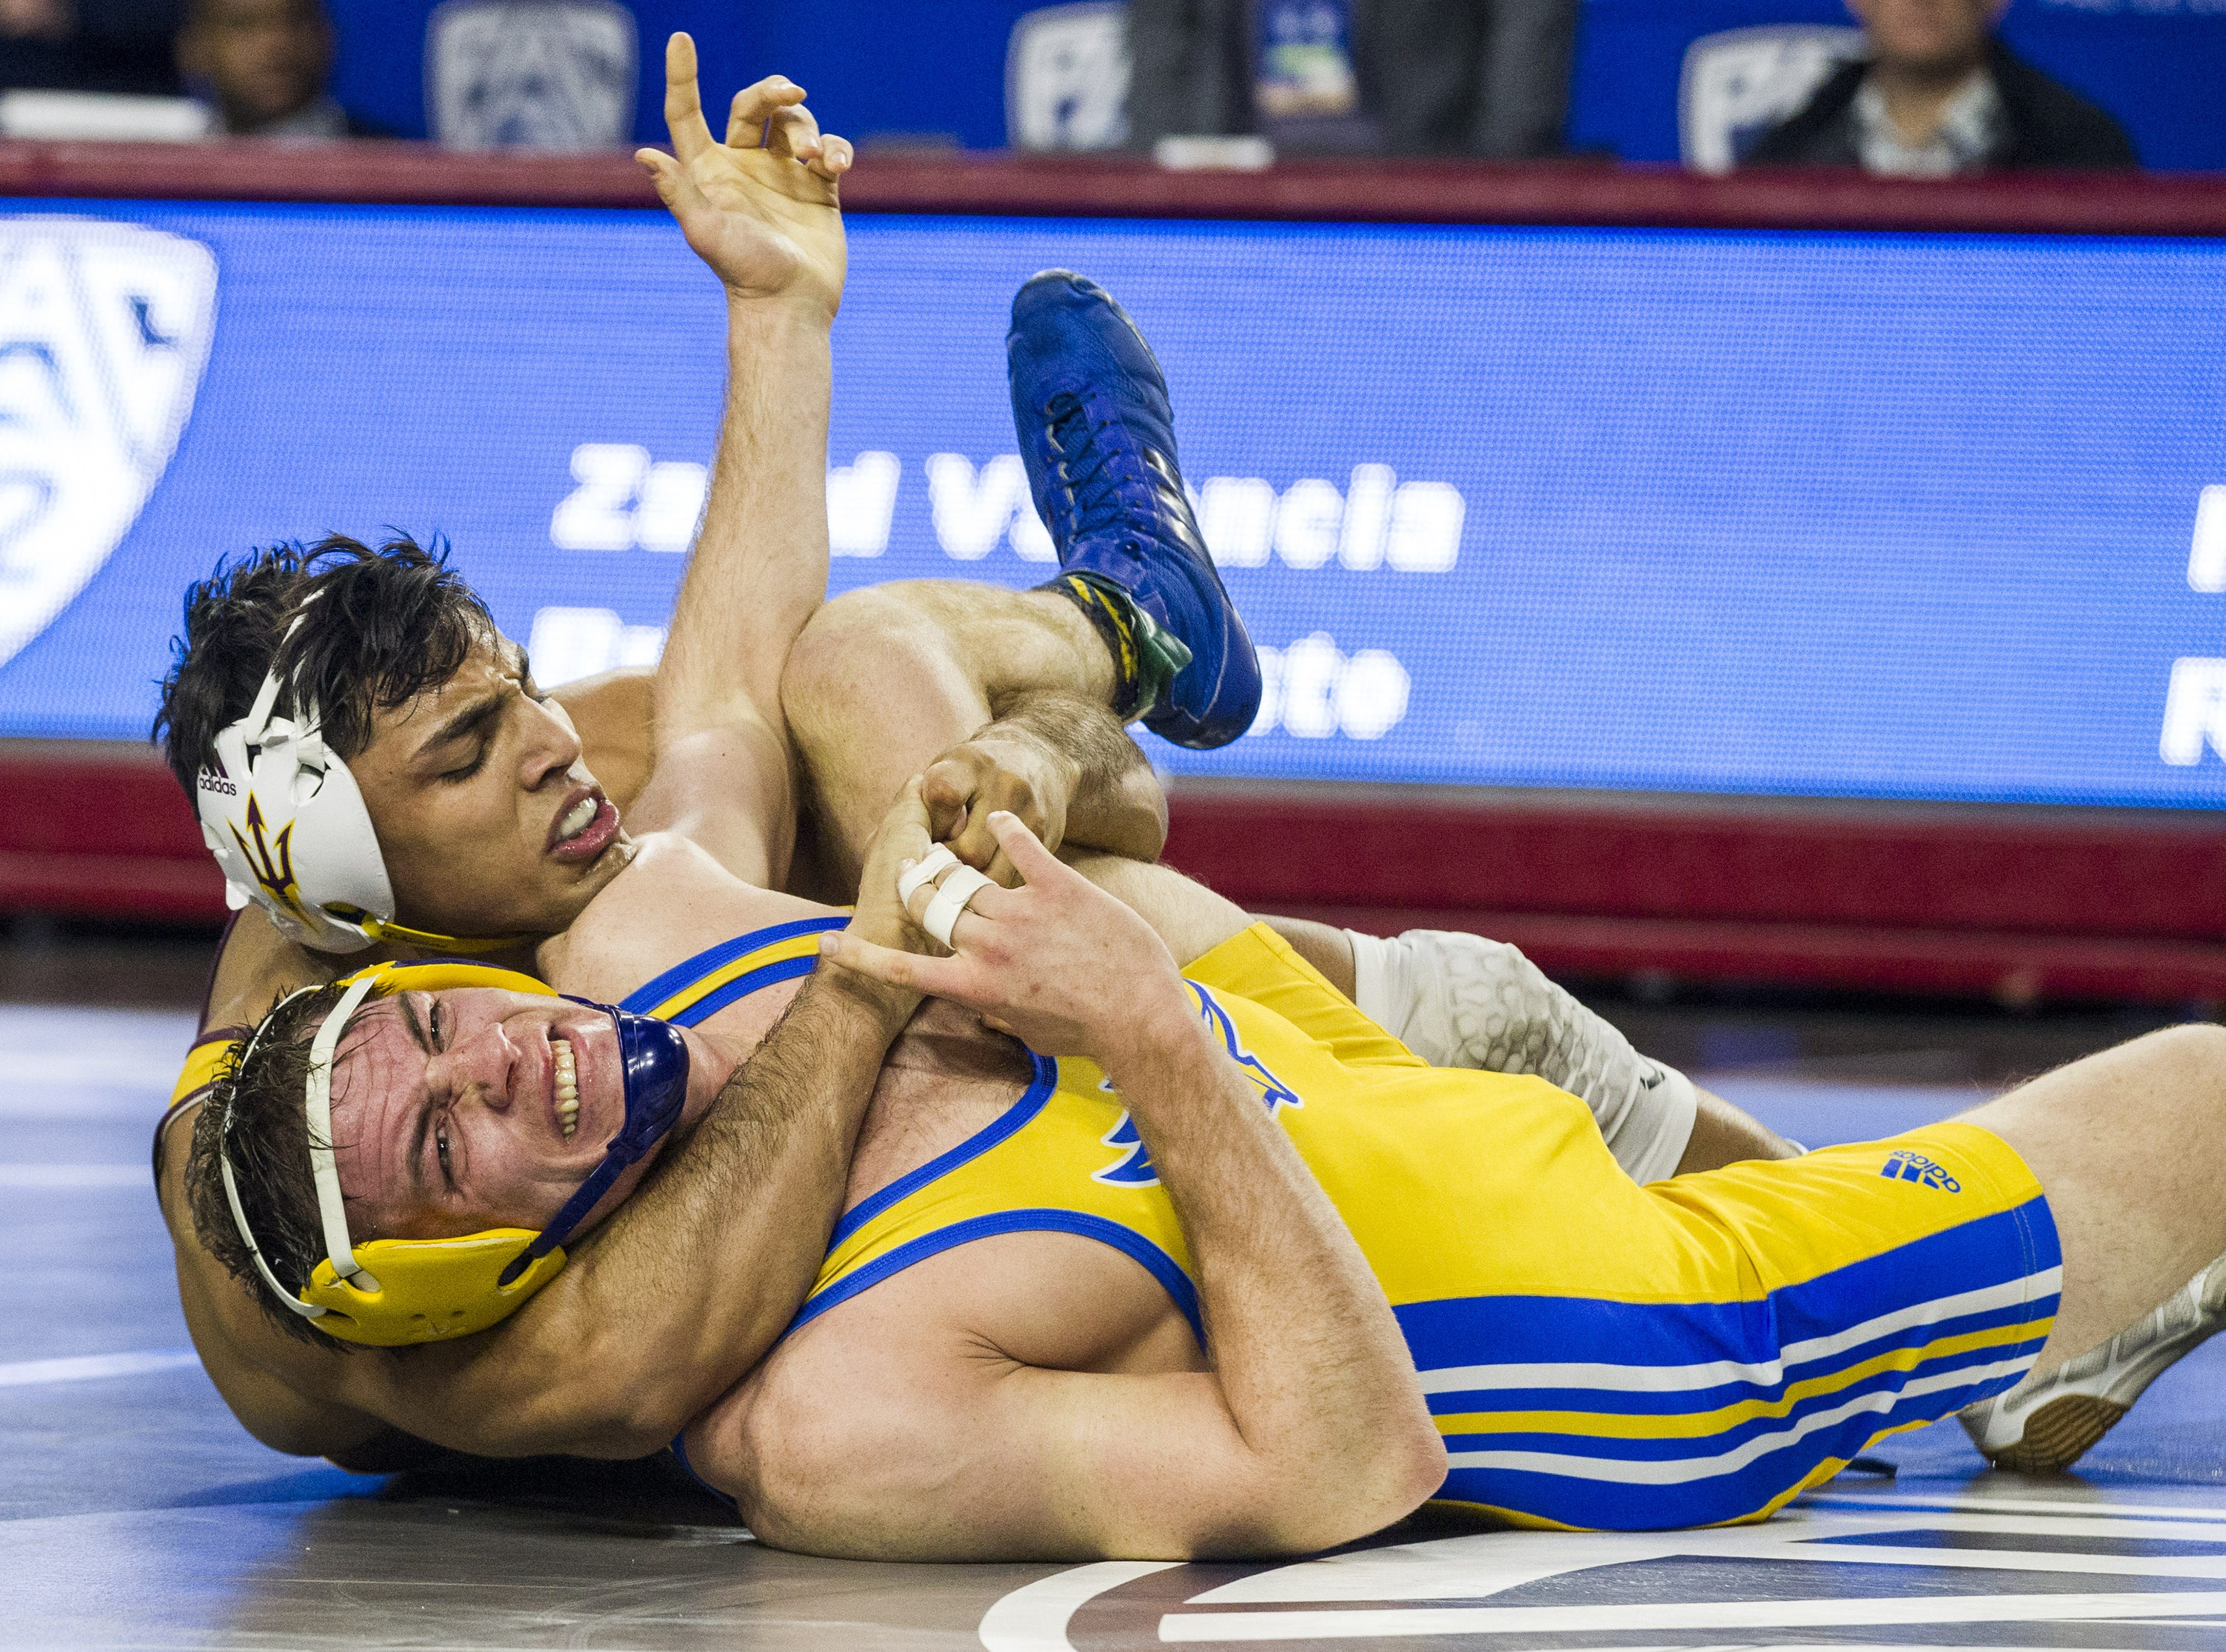 The PAC 12's Most Outstanding wrestler ASU's Zahid Valencia wraps up CSU Bakersfield's Bryan Battisto to win the 174 pound weight class during the Pac 12 Wrestling Championship at Wells Fargo Arena in Tempe on March 9, 2019.